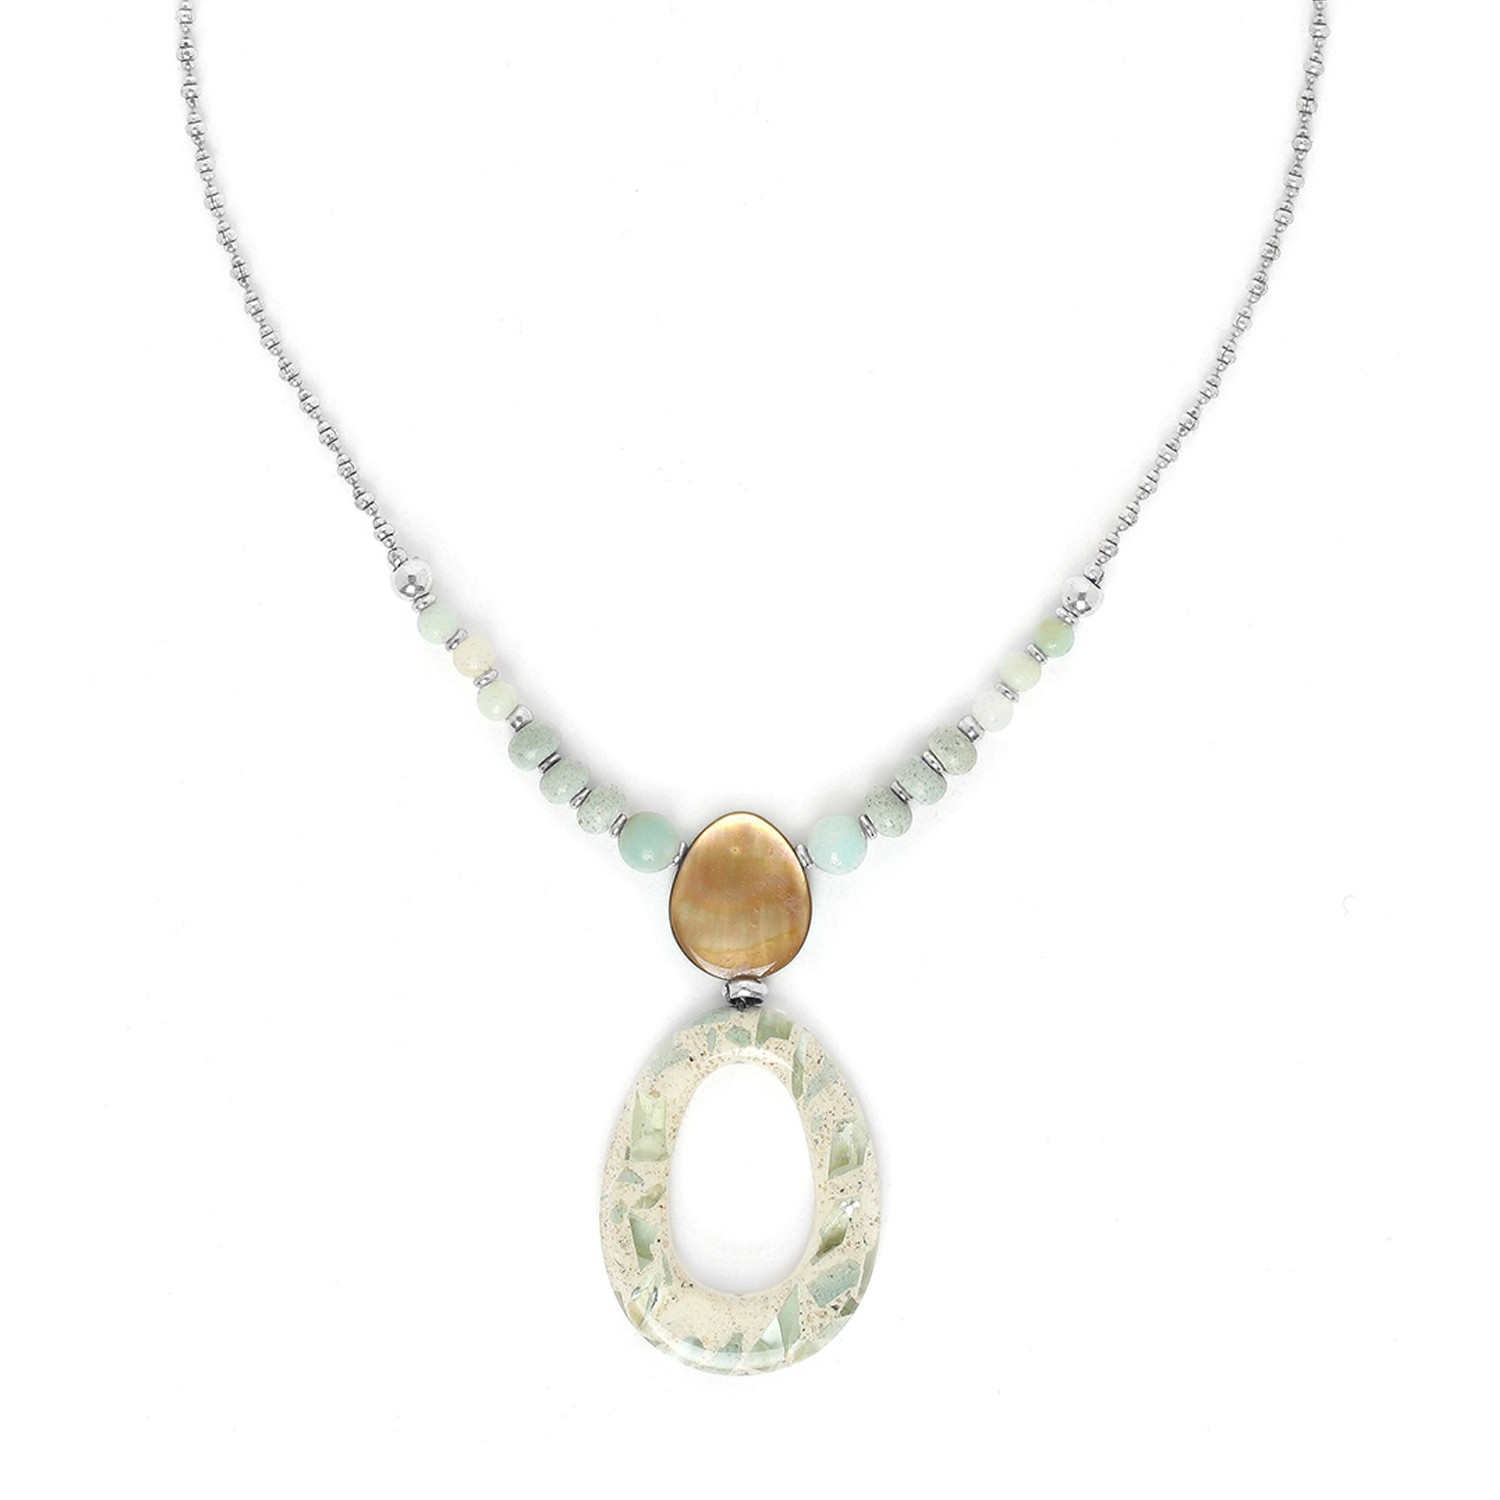 CAMARGUE ring necklace